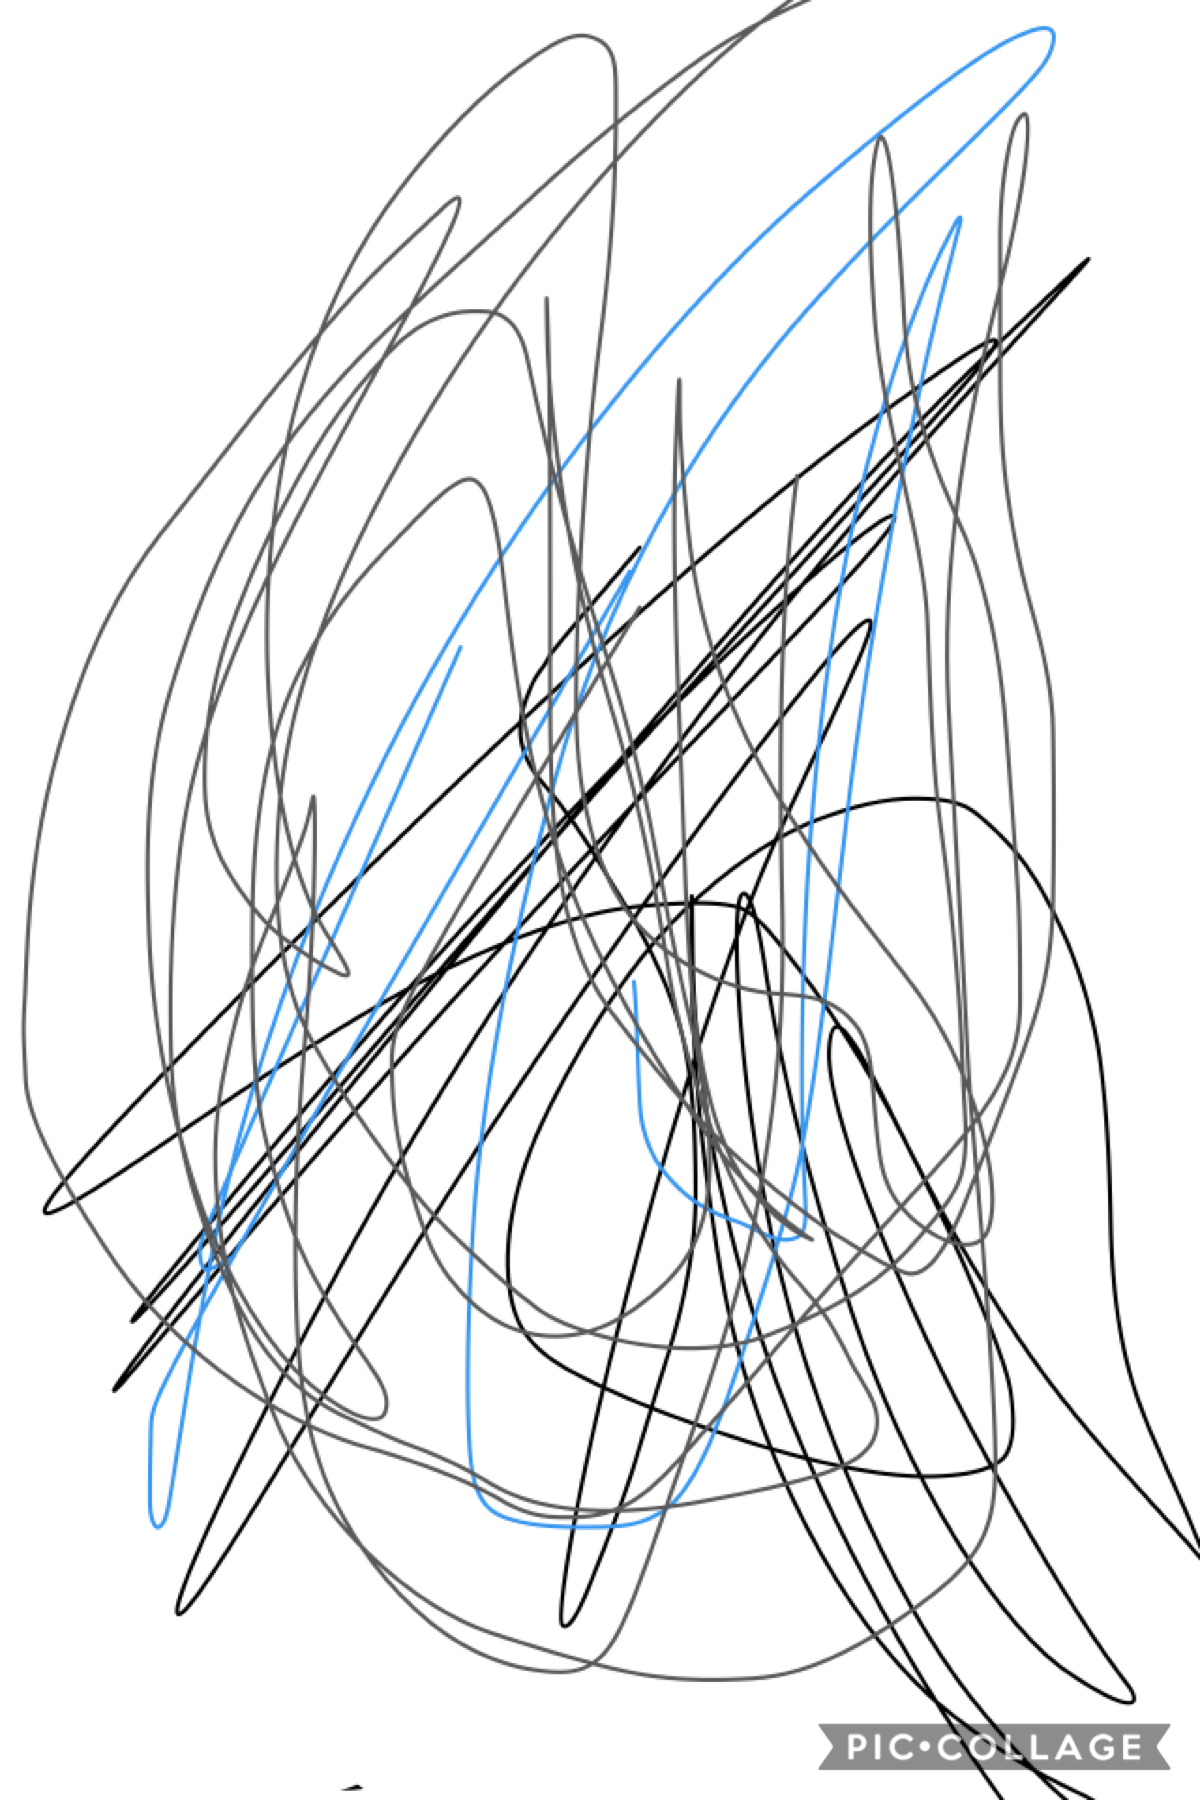 My little sister was playing on my phone and this is what she did she is only 2 and I think she needs some love on her drawing